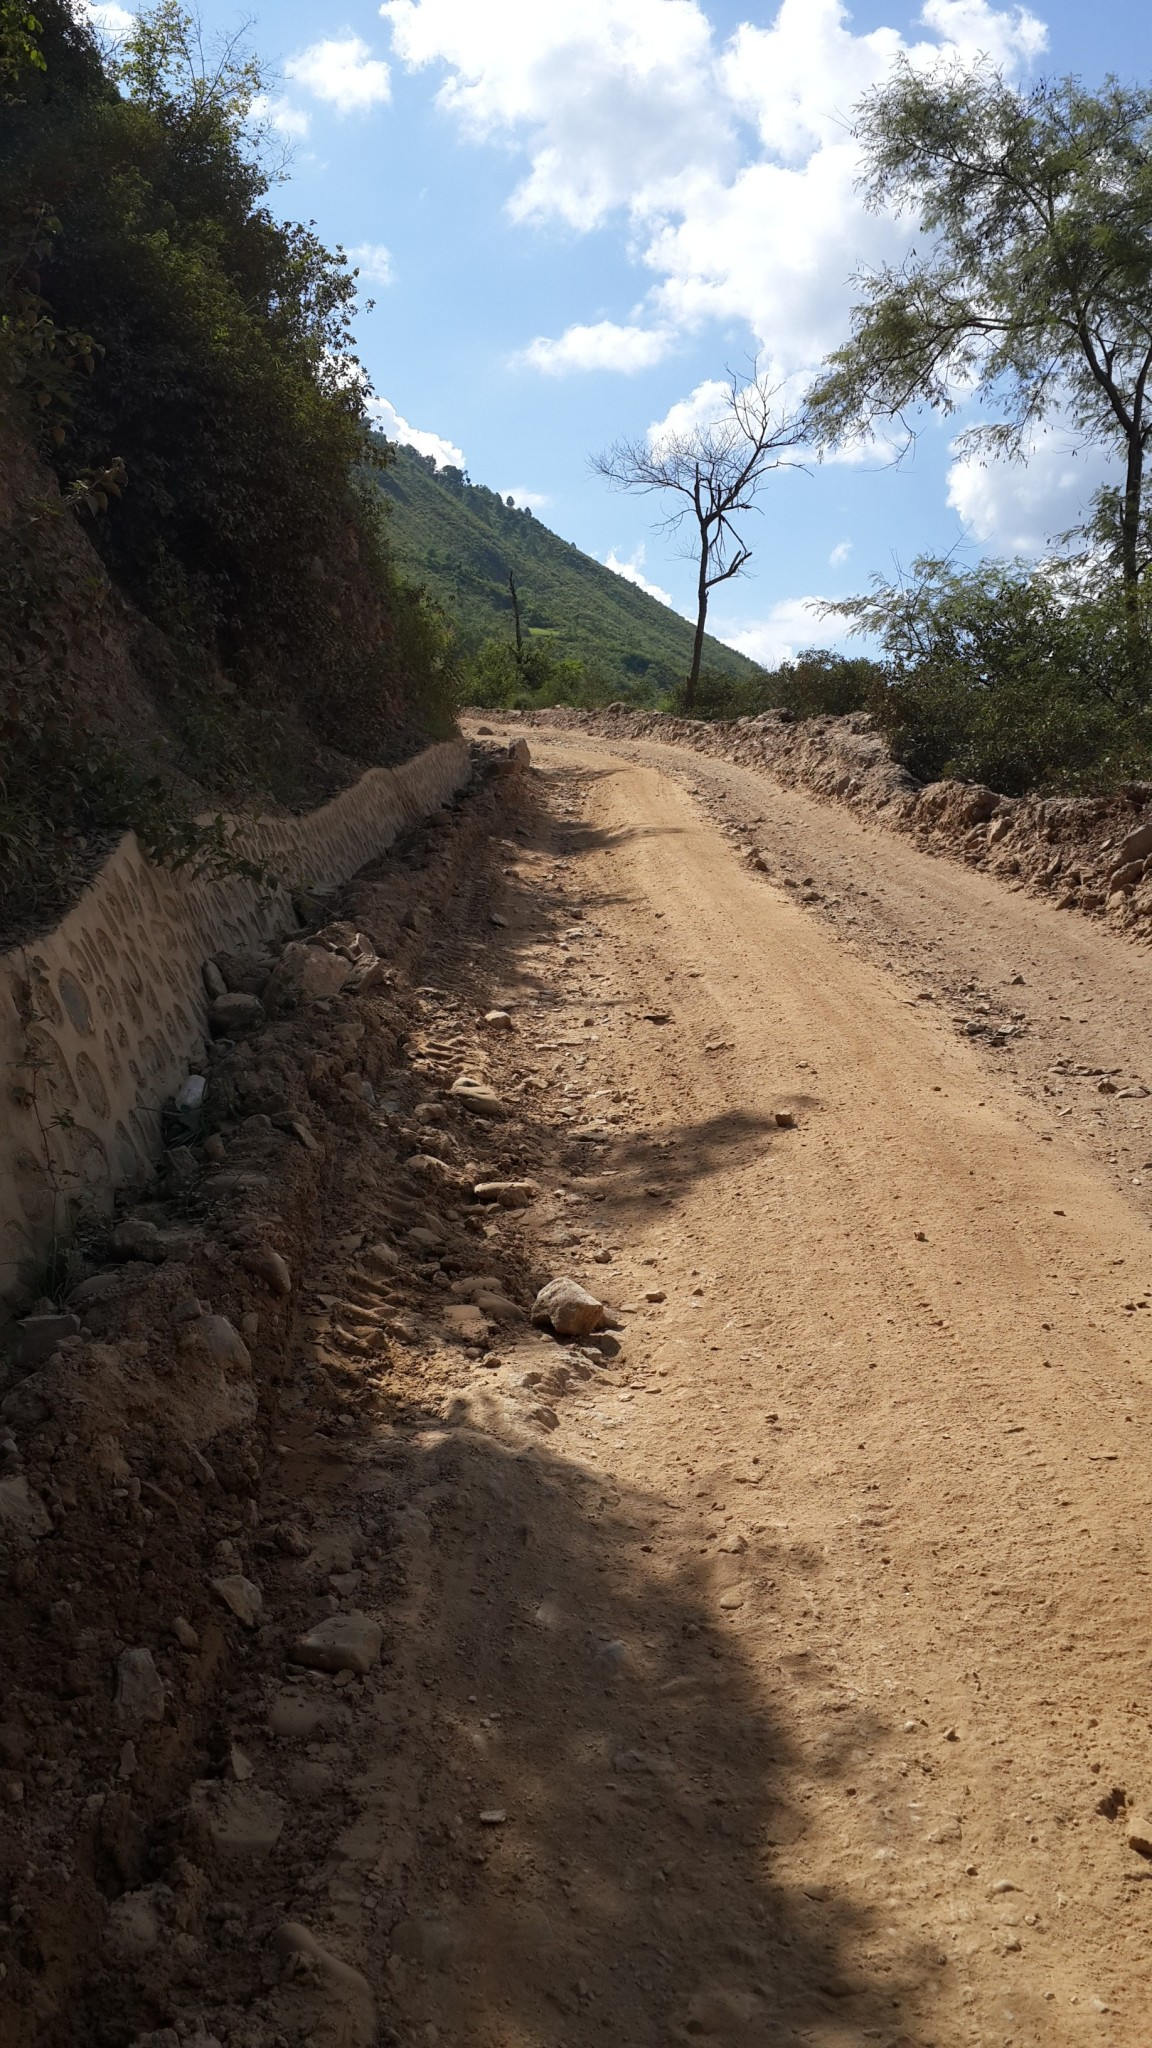 Dirt track to steep to pass.